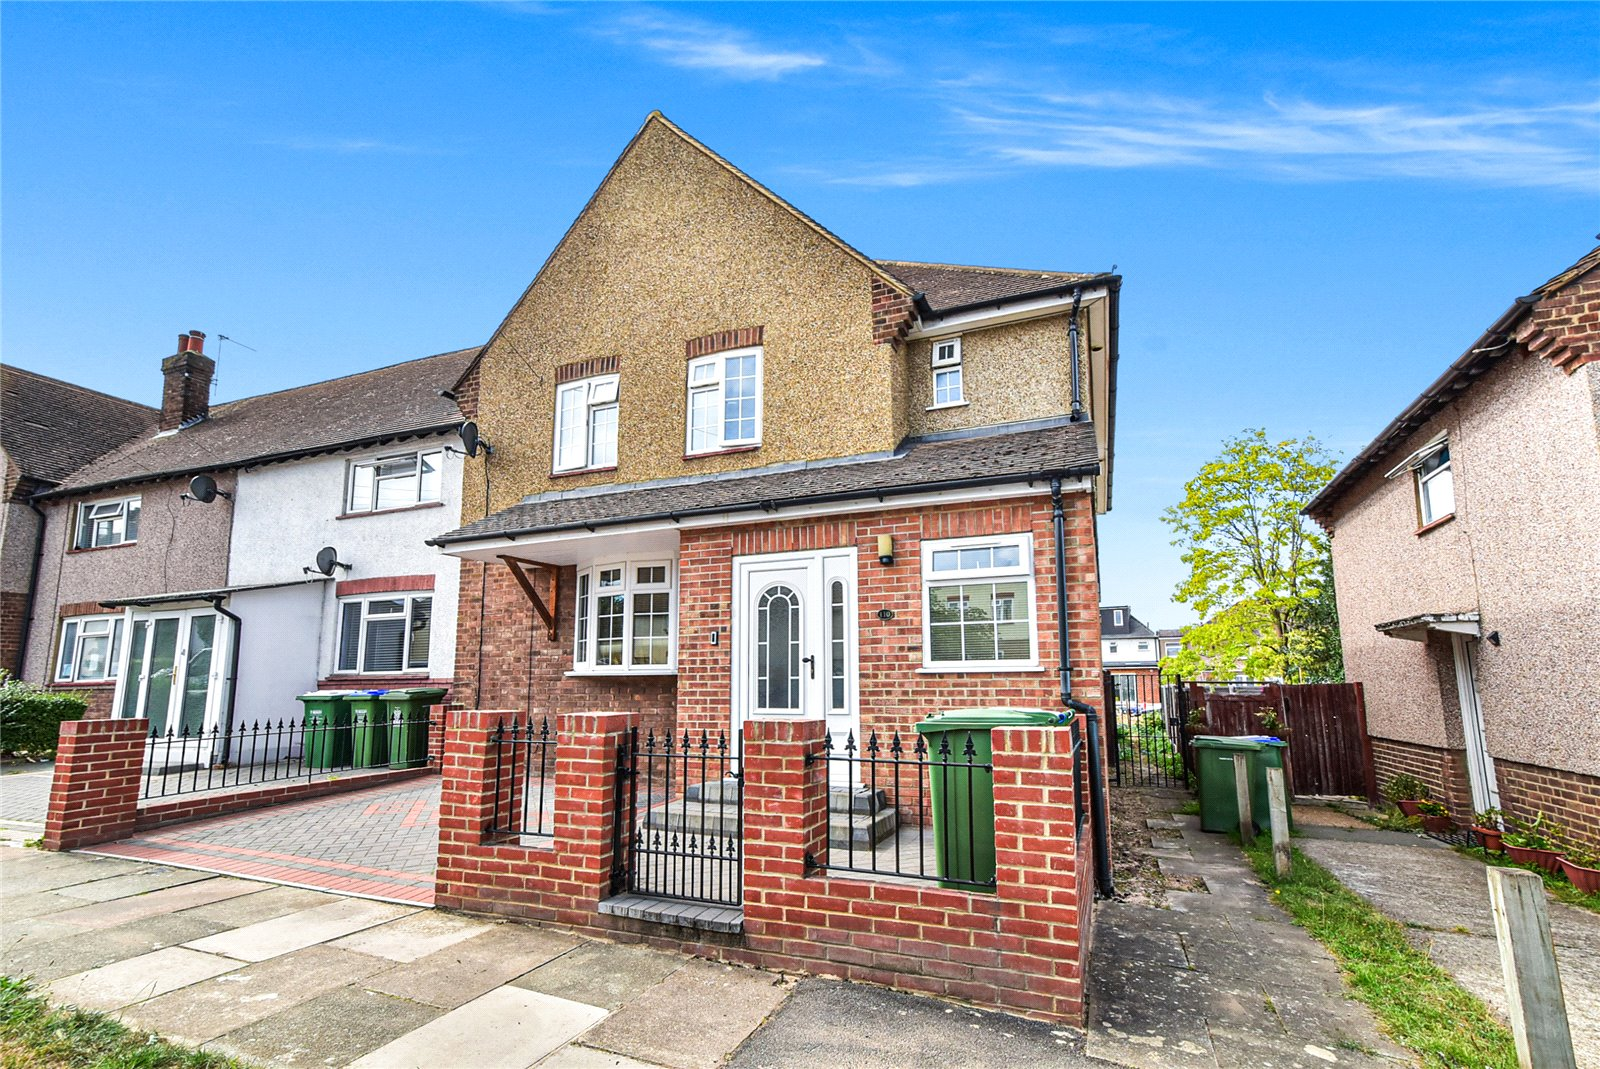 Ridge Way, Crayford, Kent, DA1